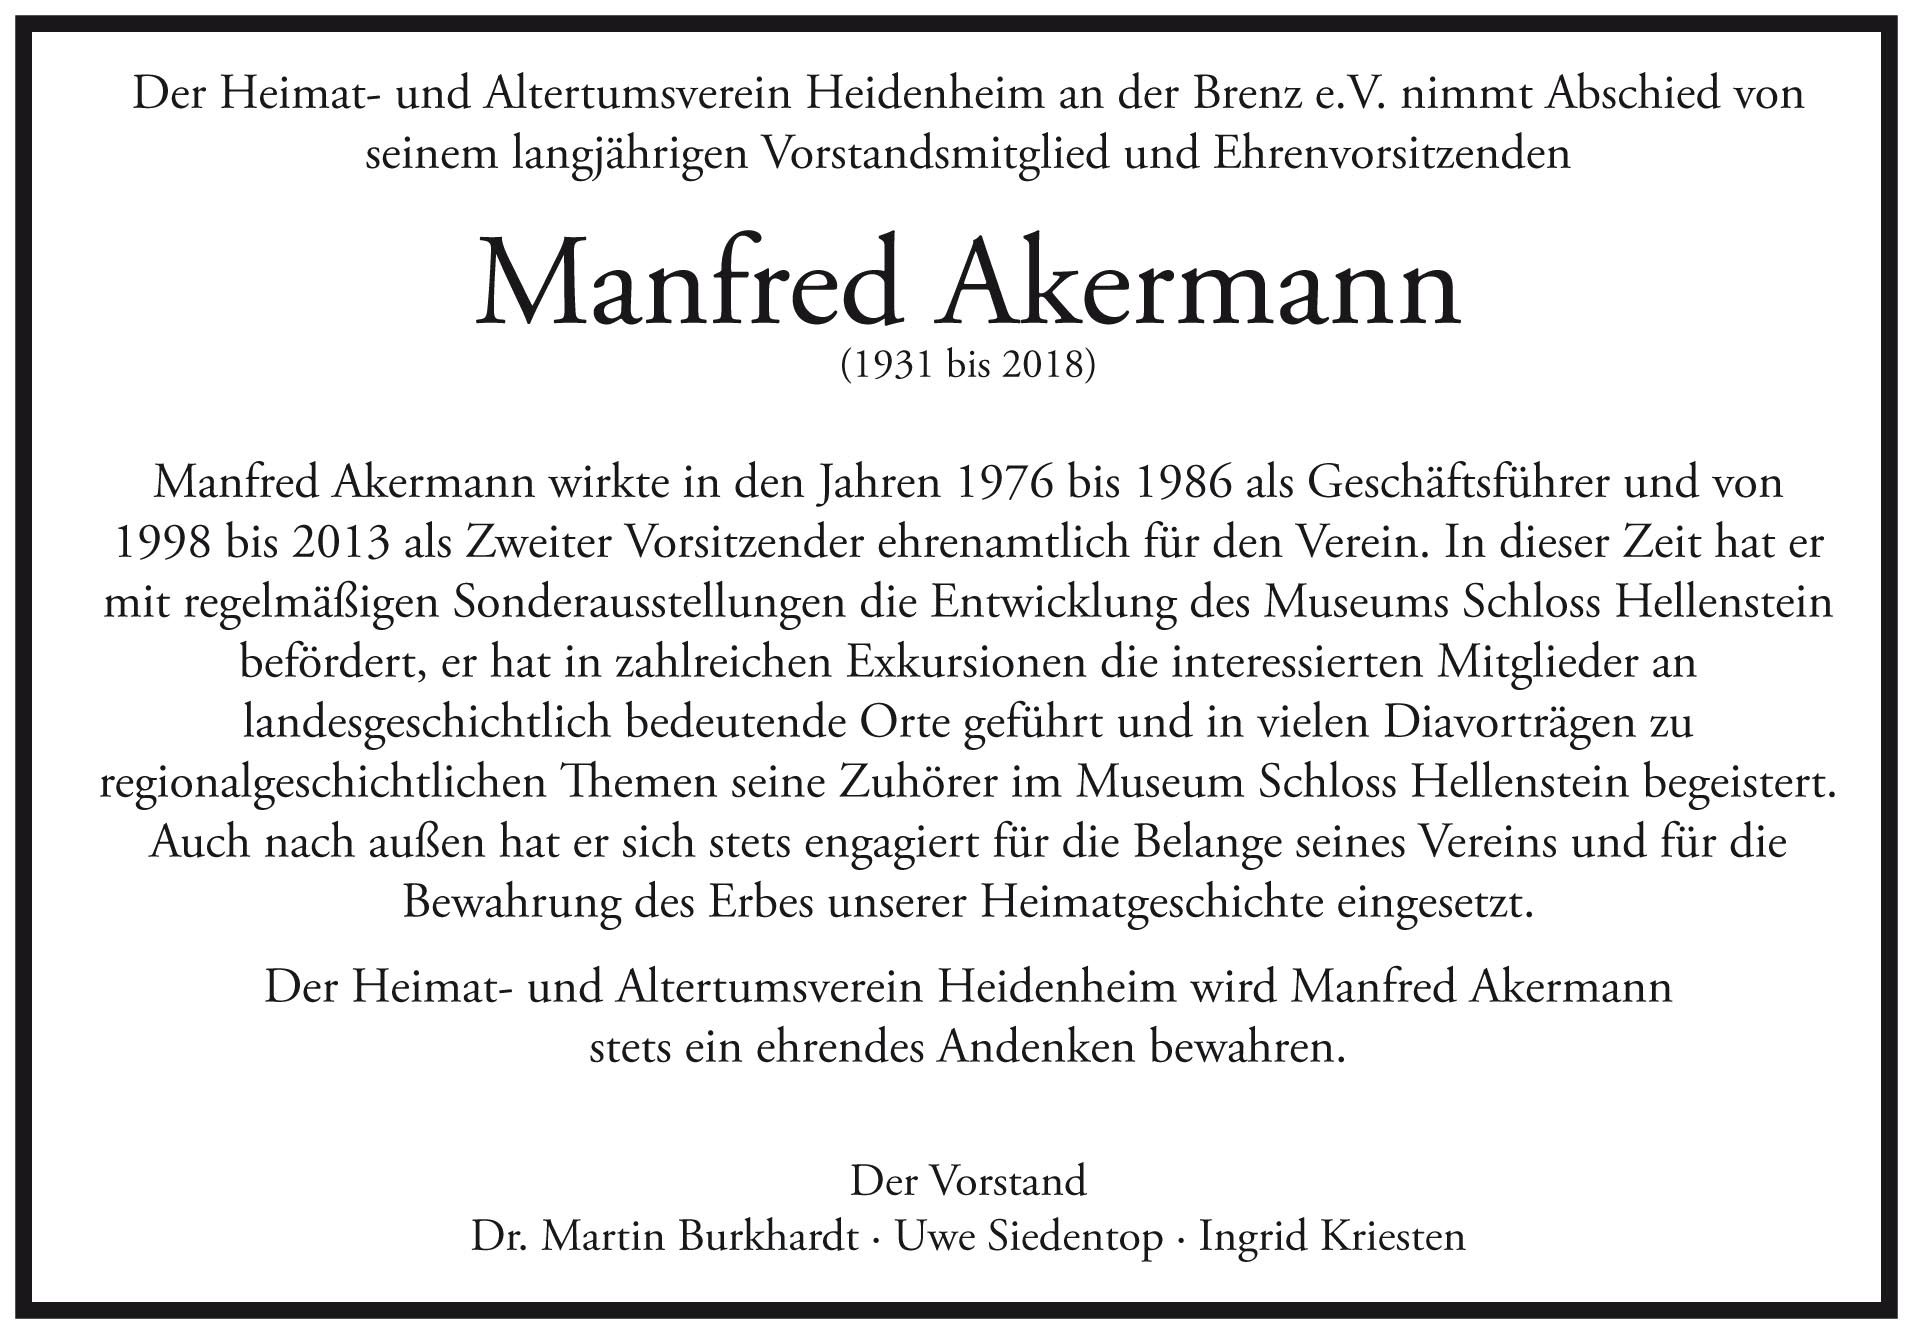 Manfred Akermann